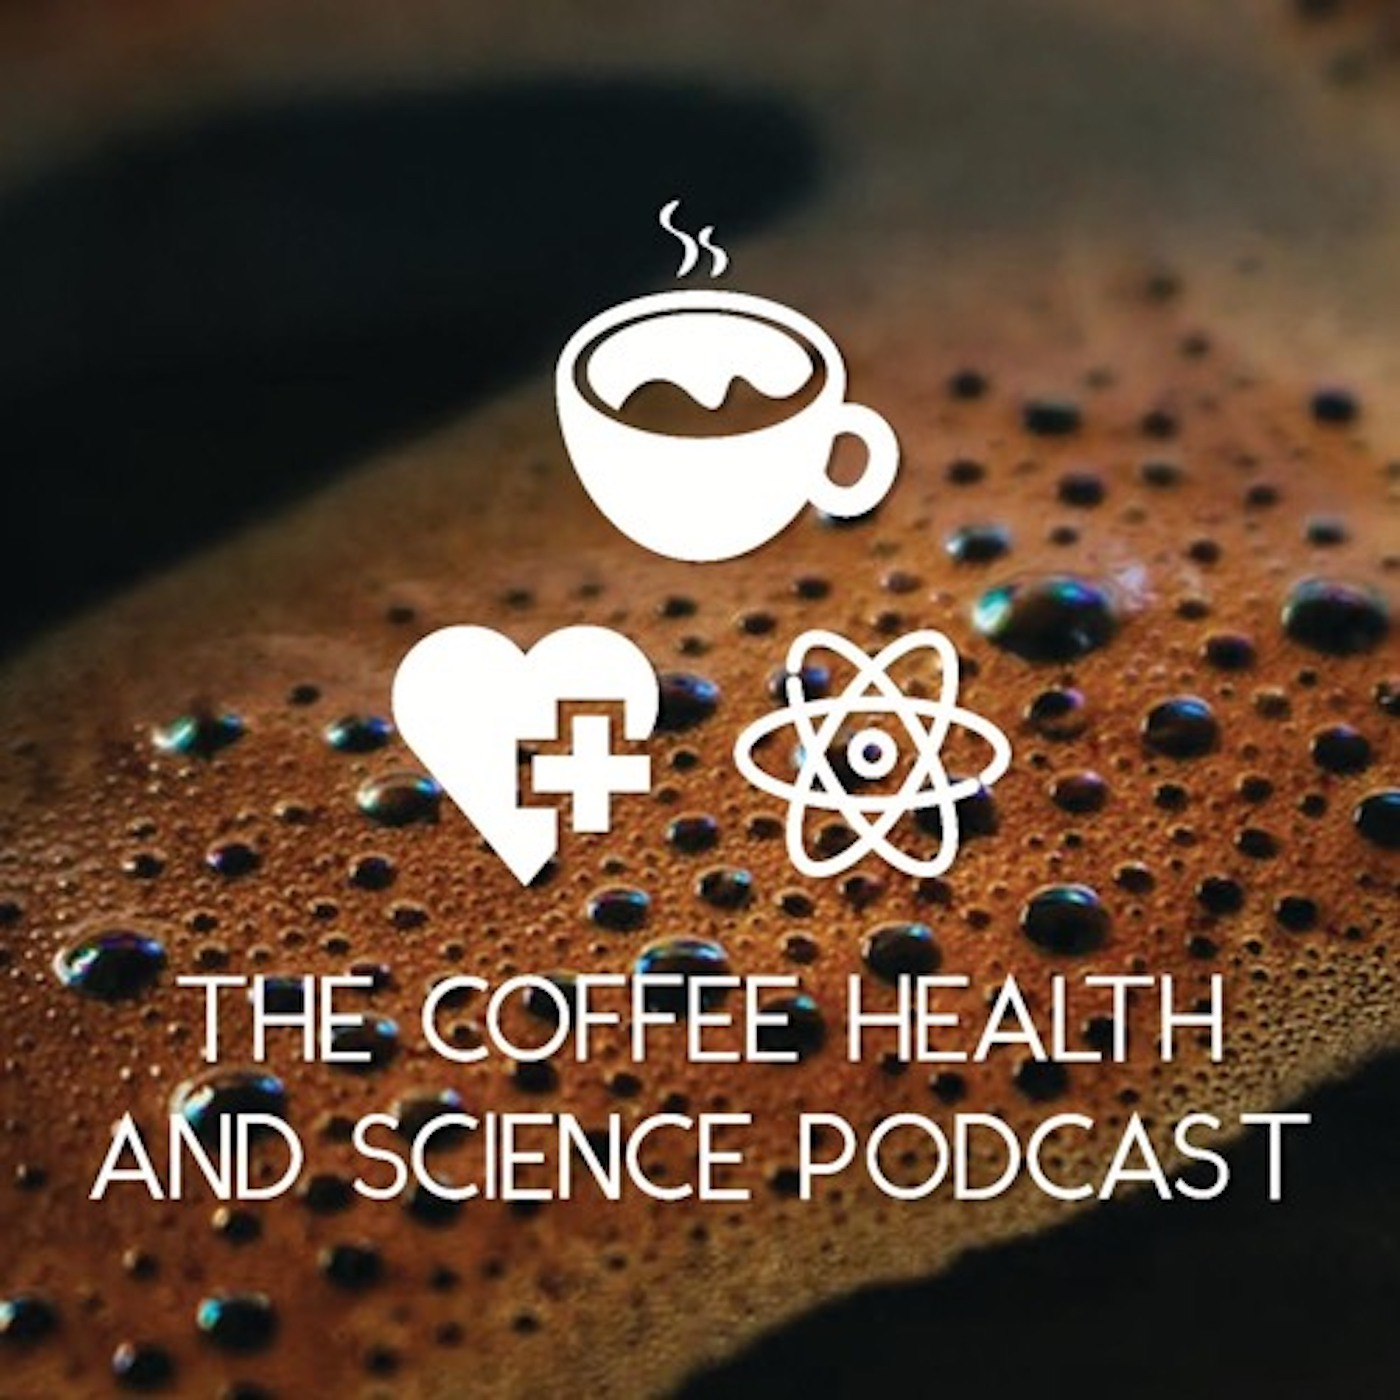 The Truth About Mold in Coffee, Mycotoxins, and More Roasting Science, with Ildi Revi